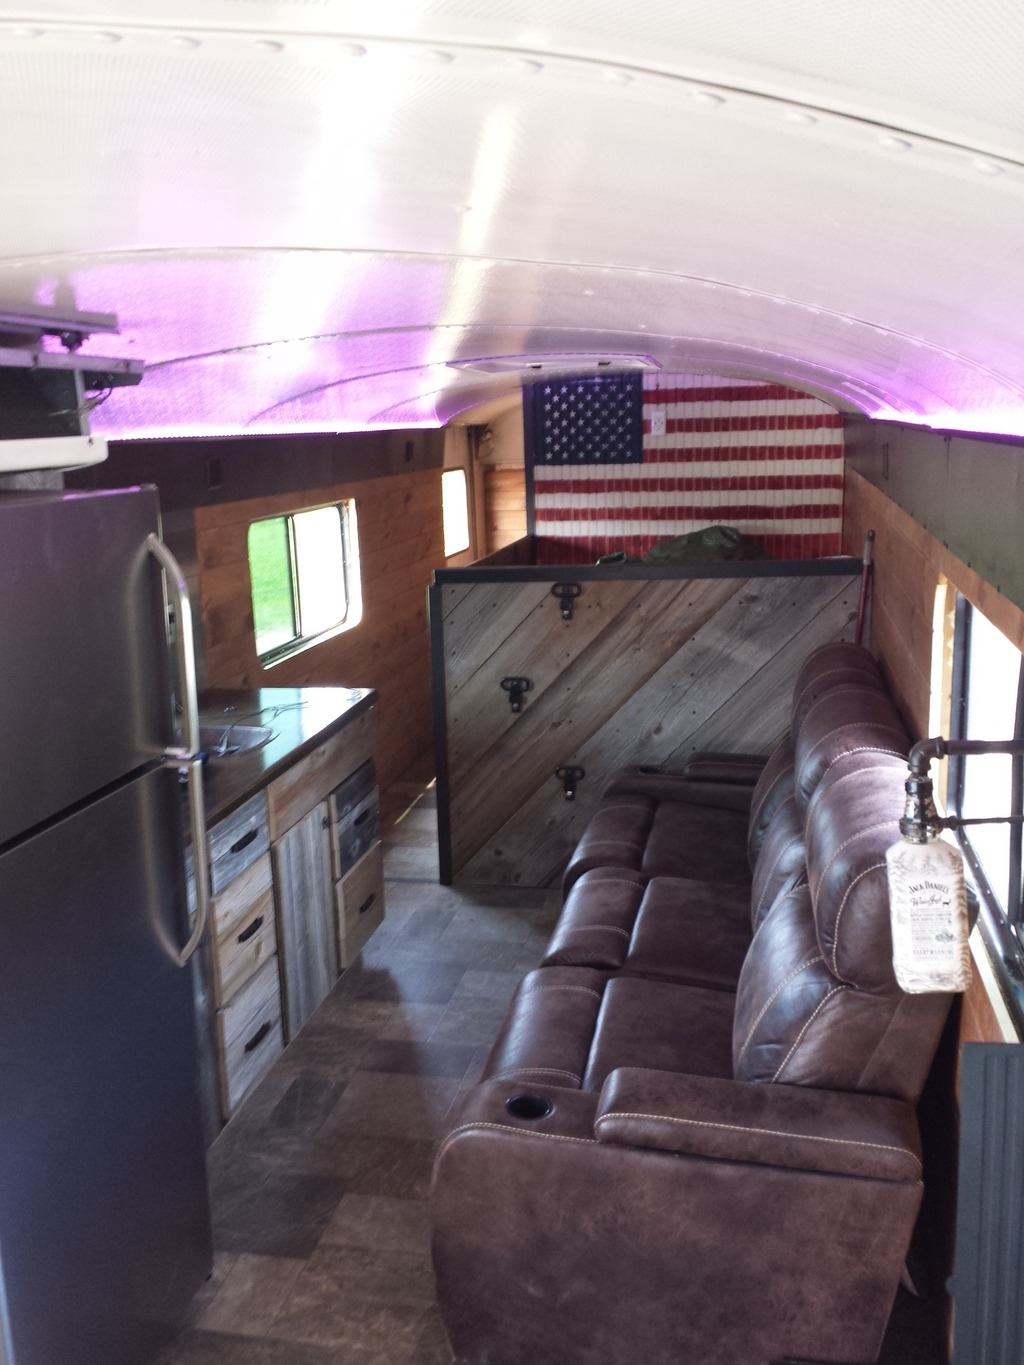 2001 Converted Bus For Sale - School Bus Conversion Resources